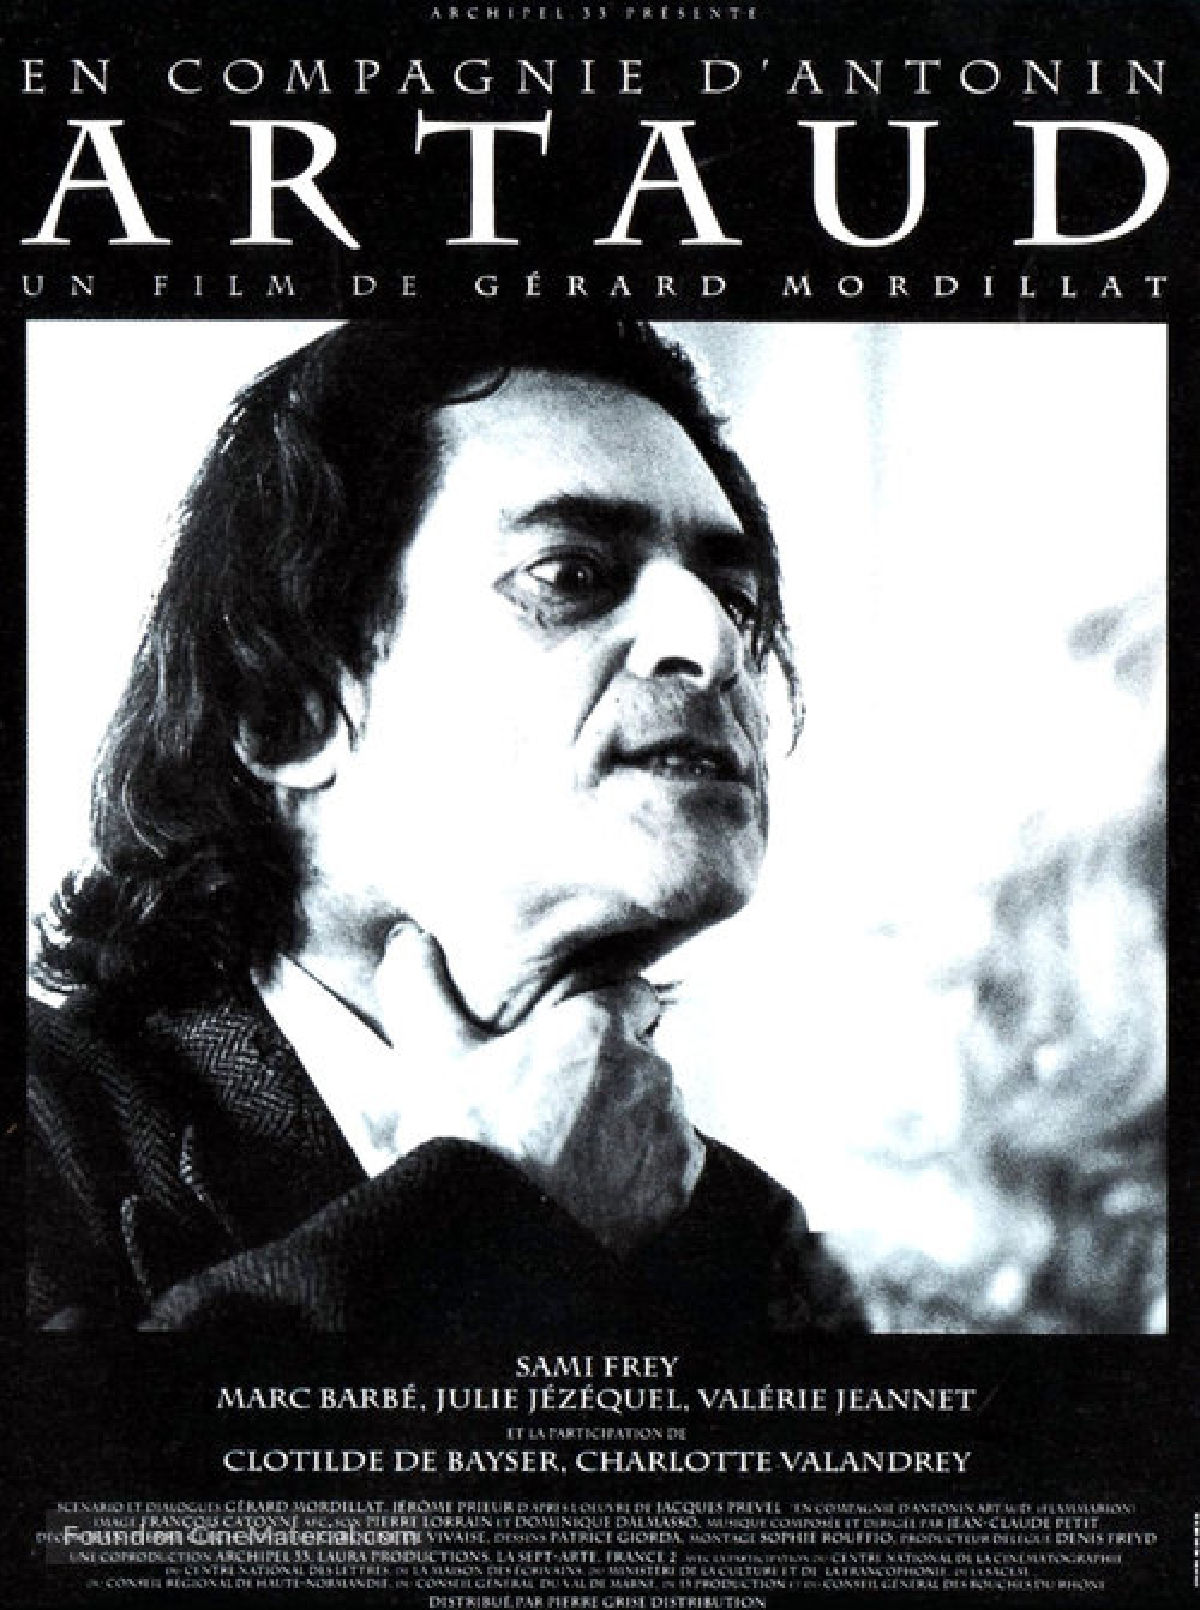 'En Compagnie D'Antonin Artaud' movie poster